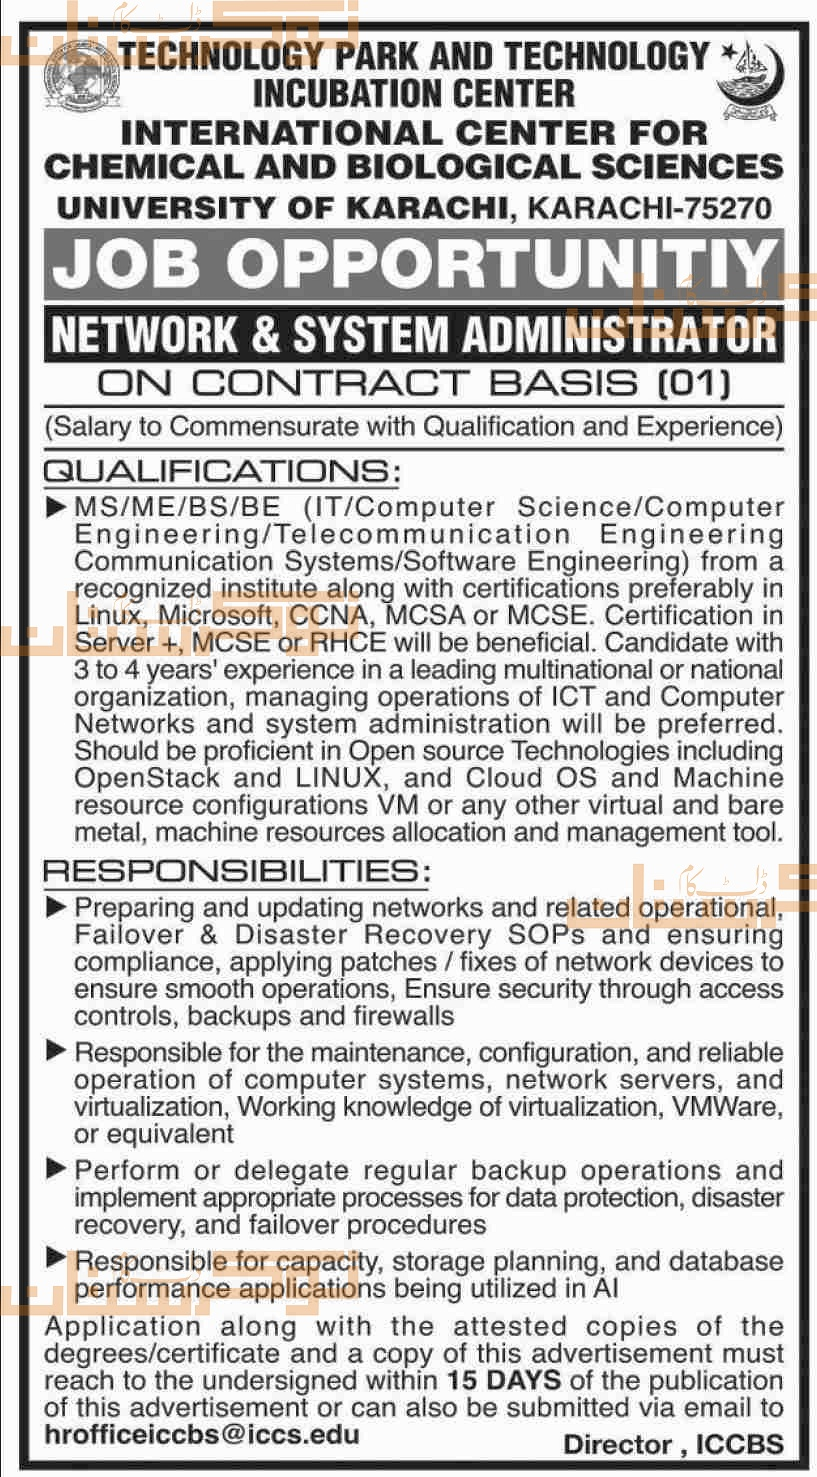 government,university of karachi technology park & technology center,network & system administrator,latest jobs,last date,requirements,application form,how to apply, jobs 2021,